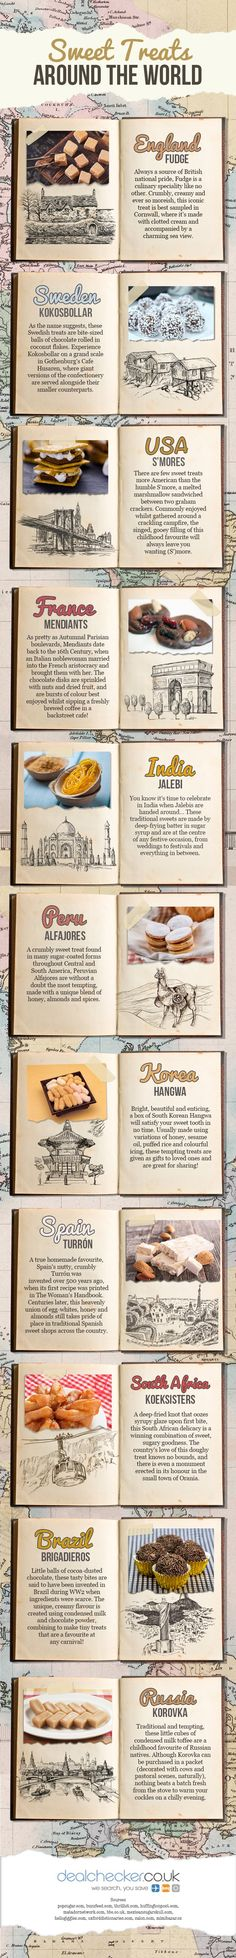 Sweet Treats Around the World #infographic #Travel #Food